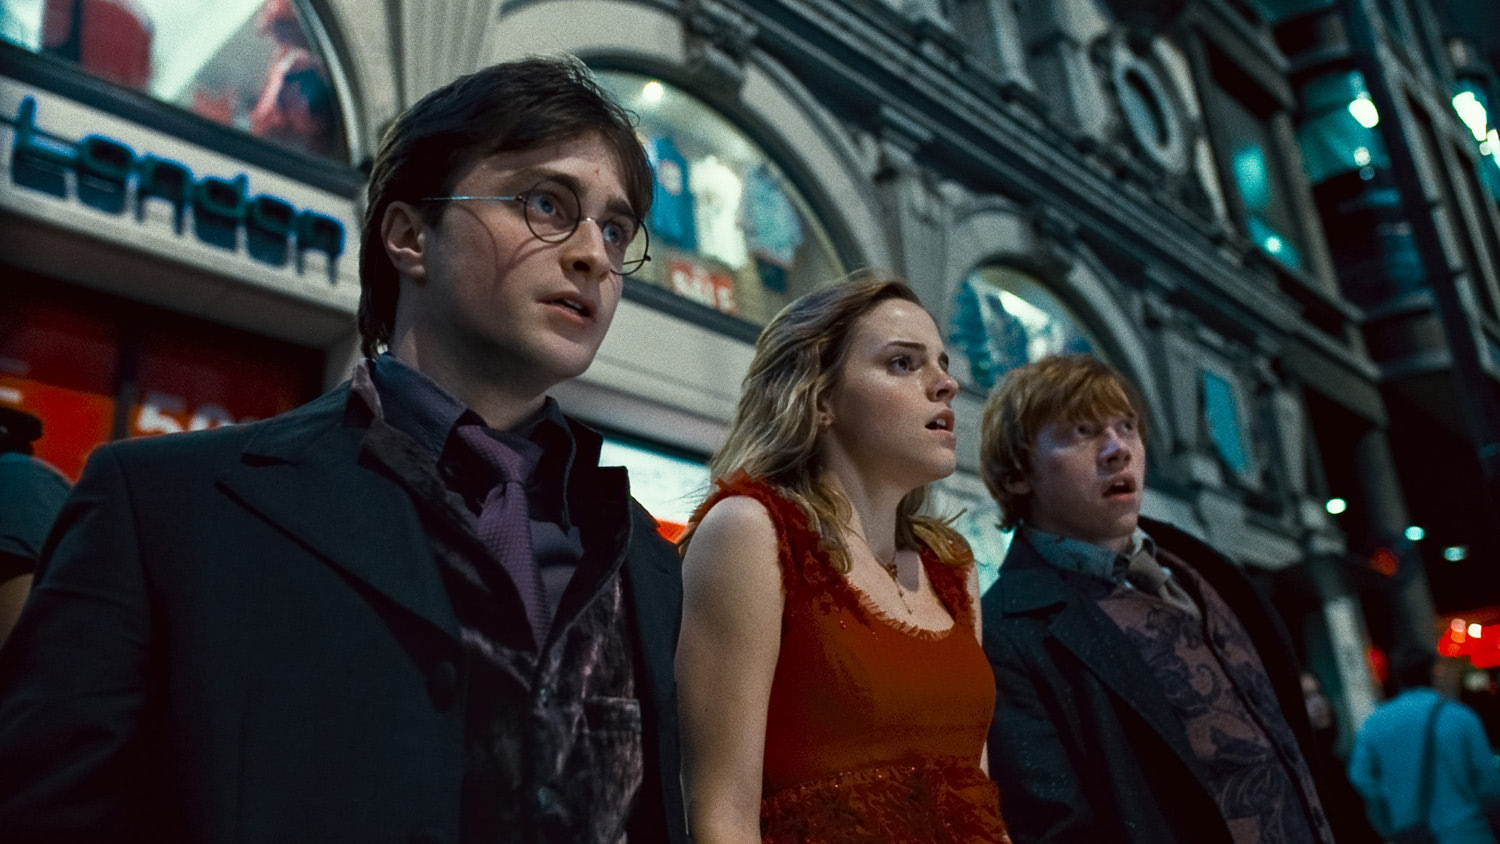 Harry, Ron and Hermione escape to London